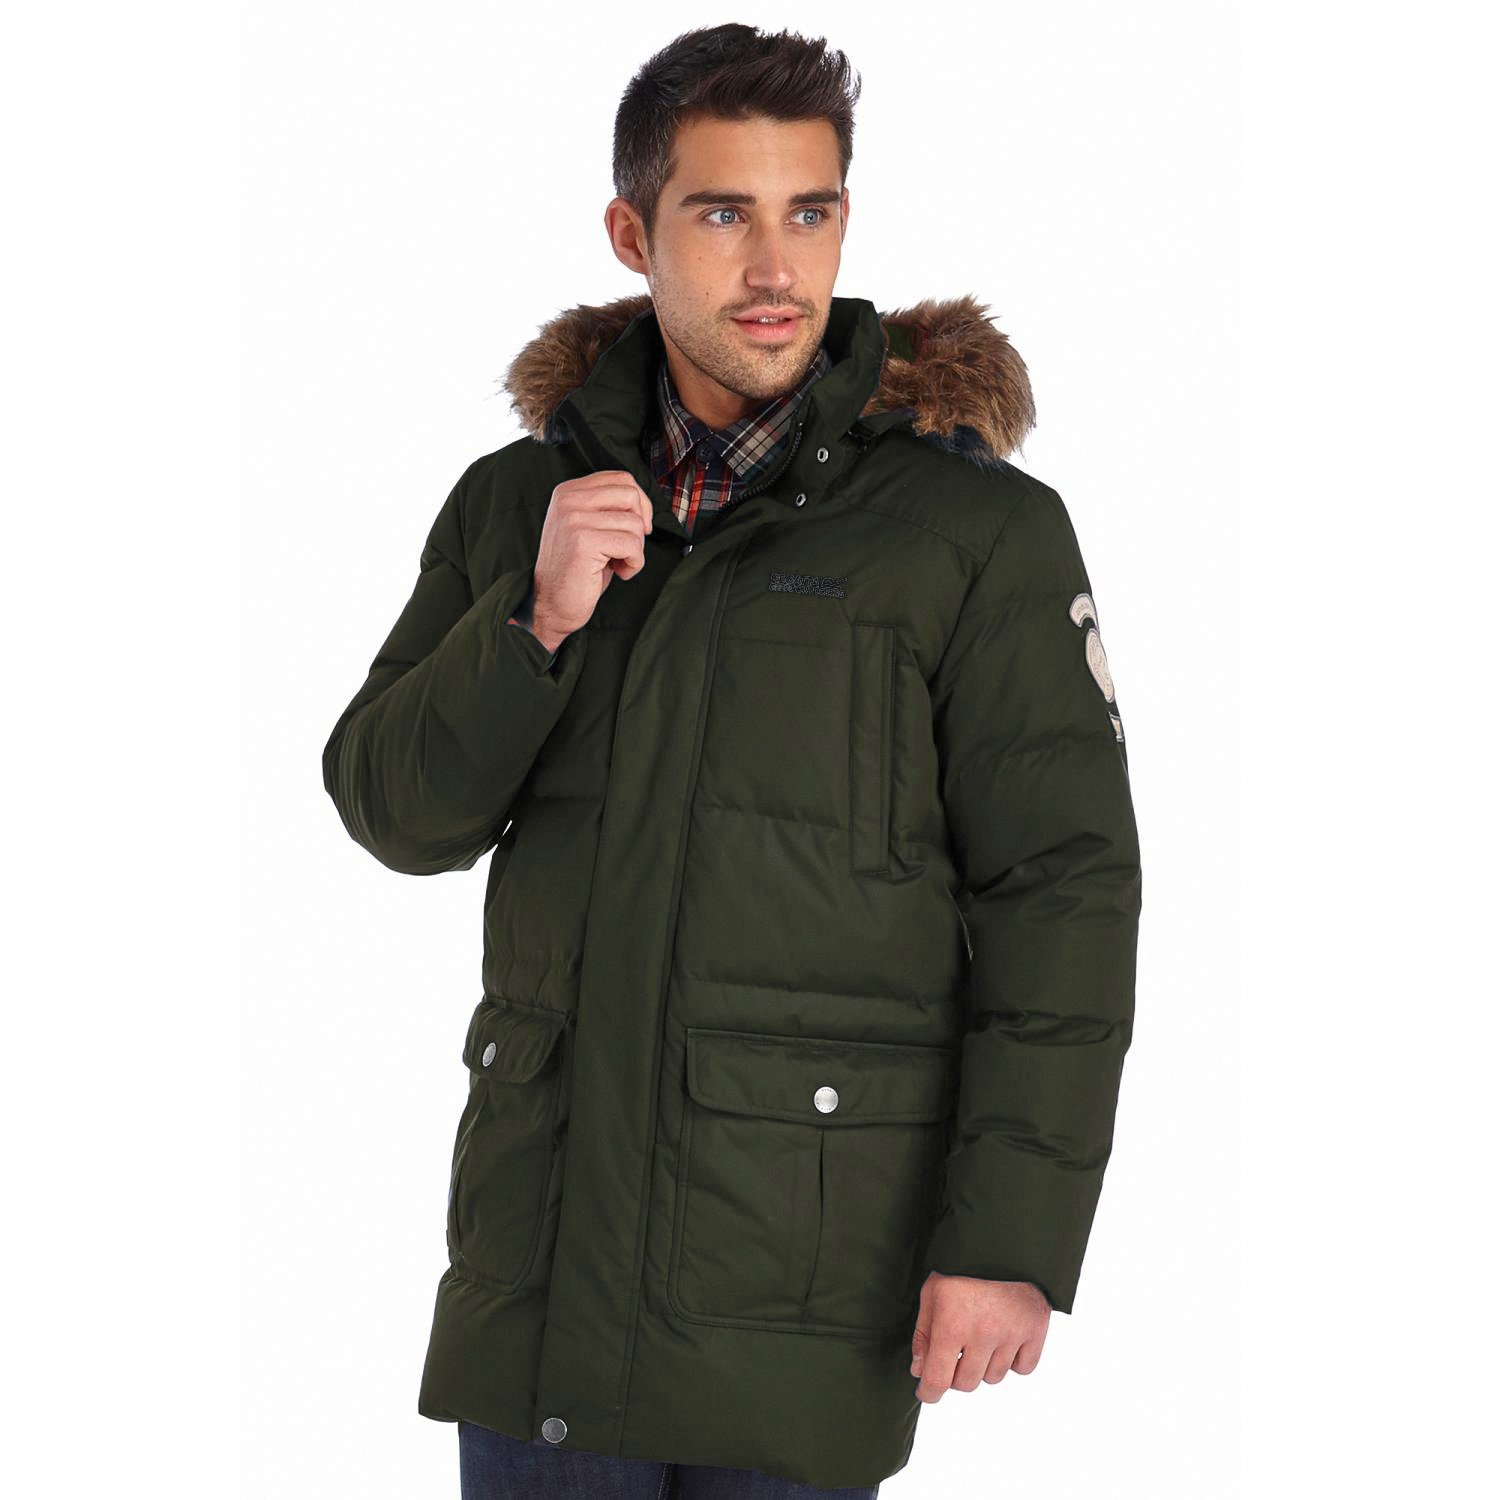 Regatta Men's Andram Waterproof Down Insulated Parka Jacket - Bayleaf Green (RMN064 905 16/17)